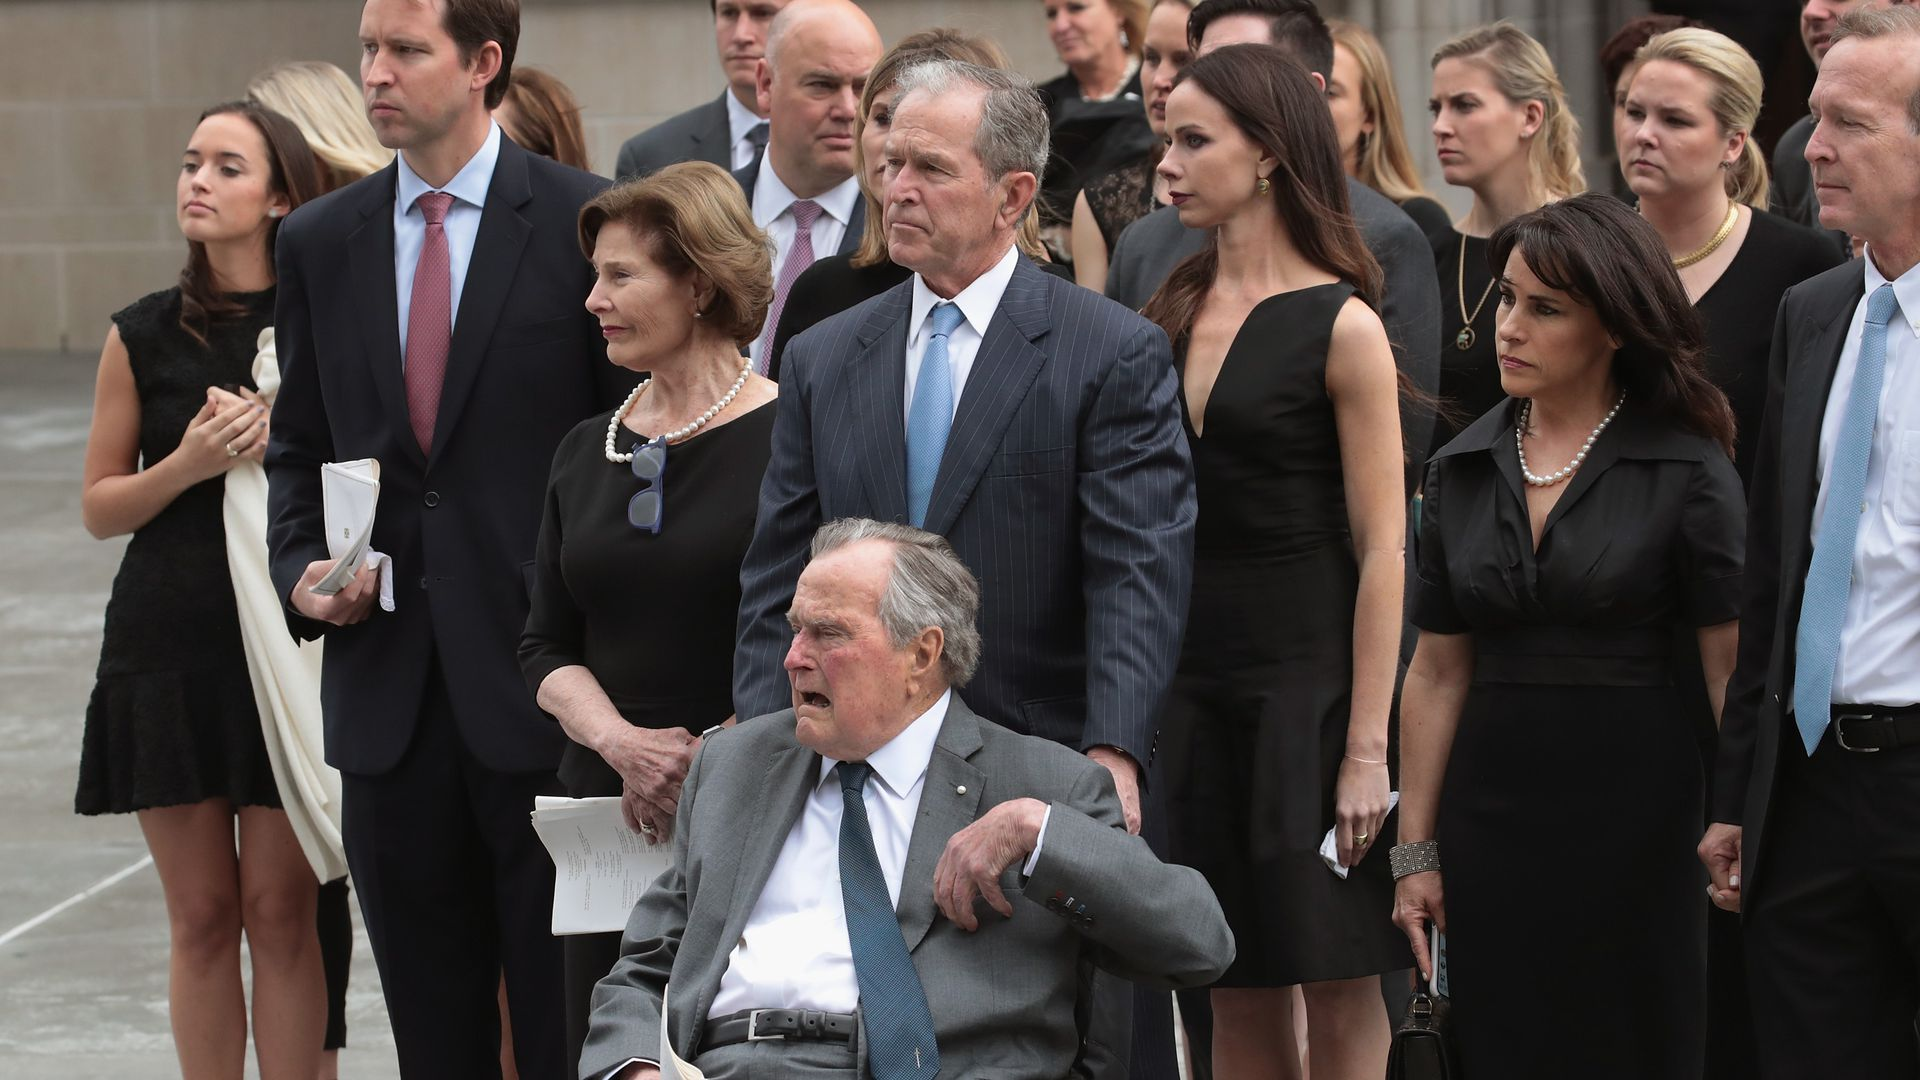 The Bush family together at the funeral